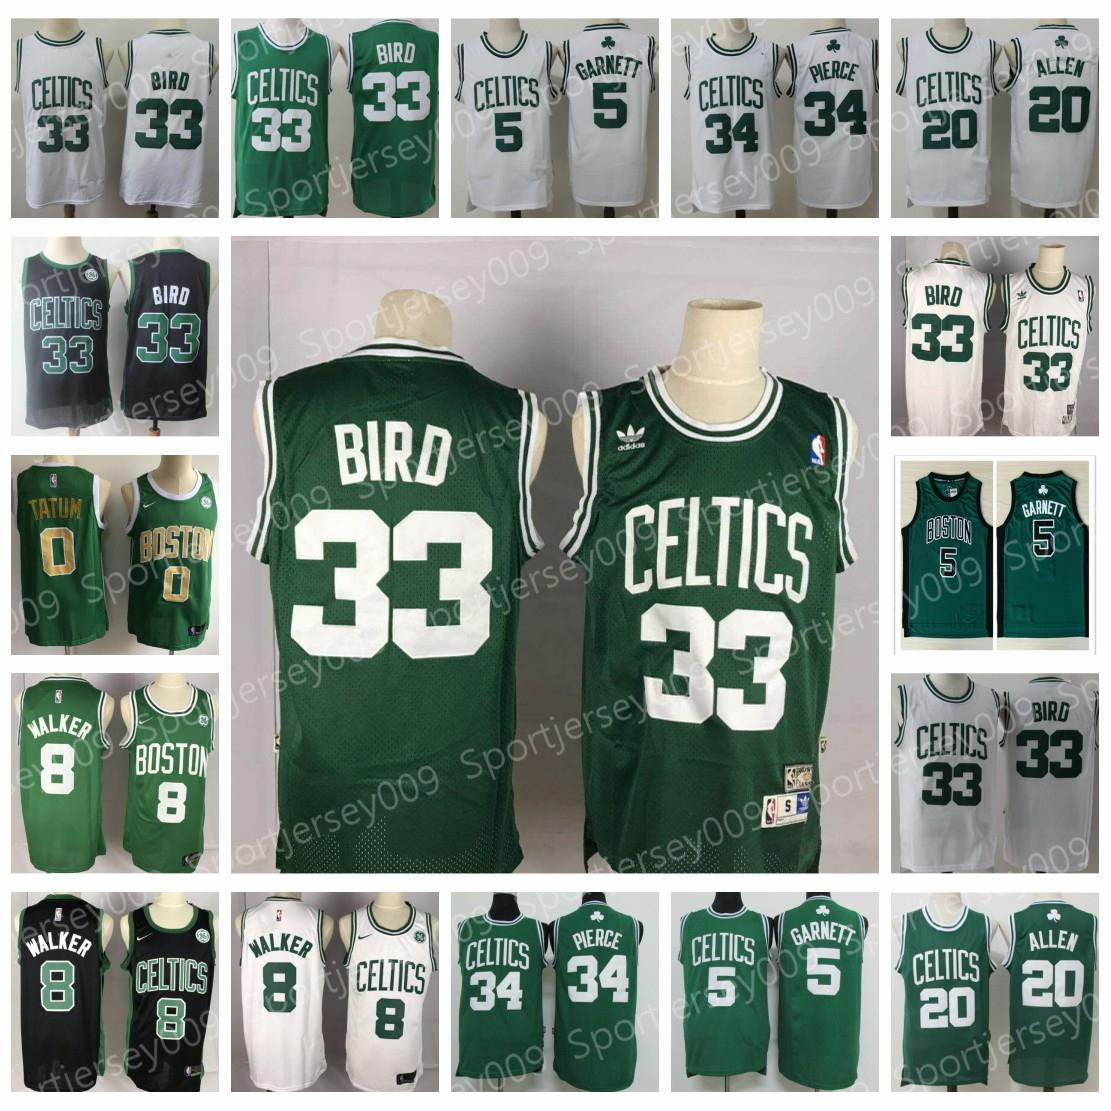 new product e3431 421da Vintage Boston 5 Kevin Garnett Jersey 20 Ray Allen Paul 34 Pierce Larry 33  Bird Jersey 8 Kemba Walker Jayson 0 Tatum Basketball Jerseys